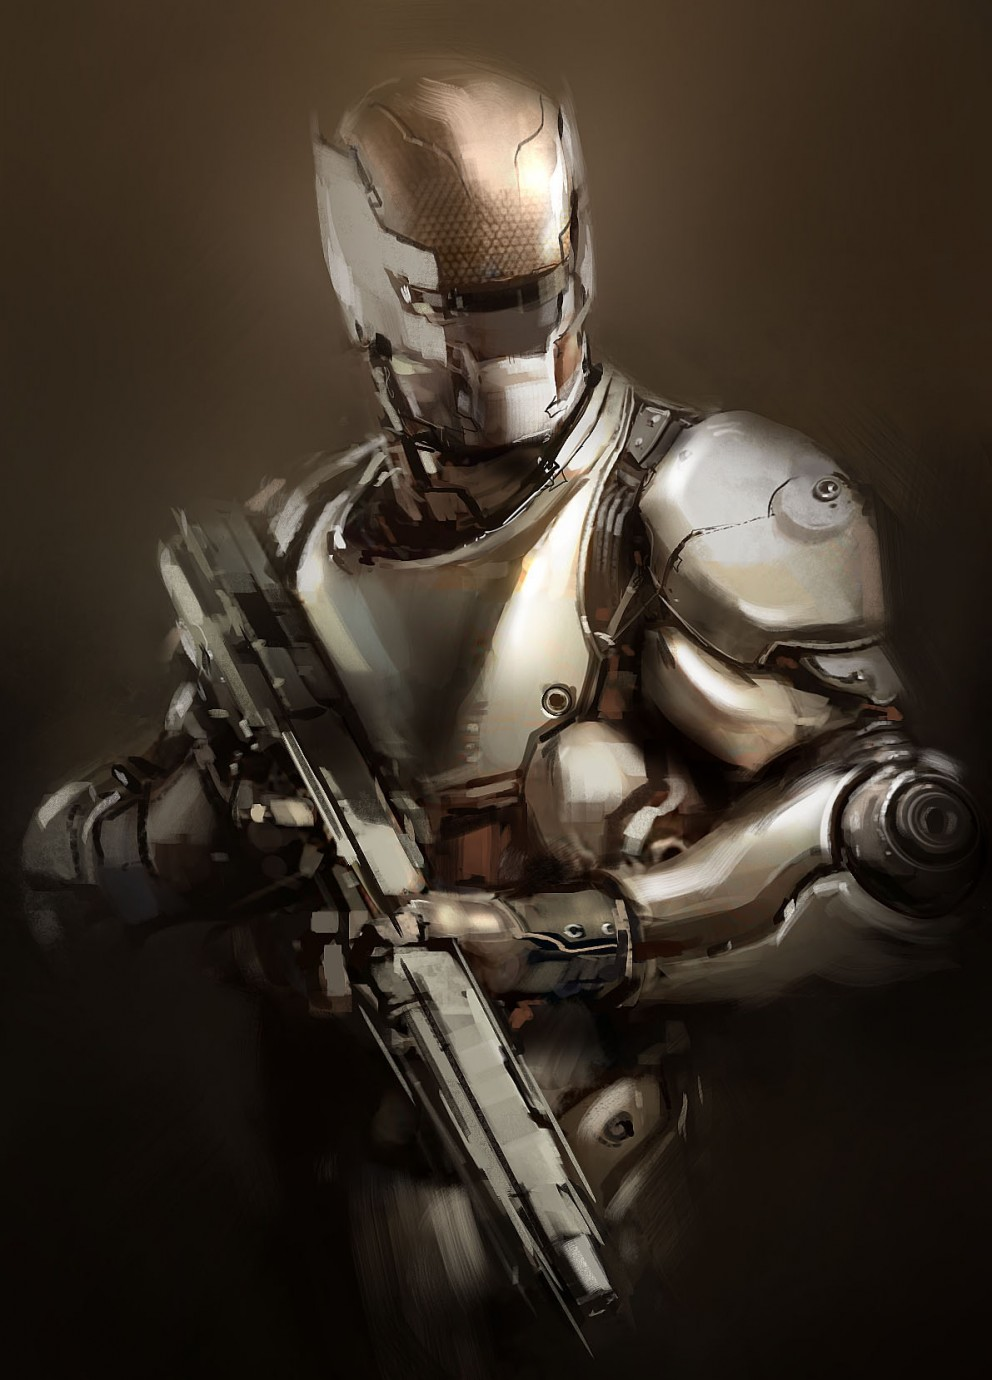 Soldier_by_Gryphart - CoolVibe – Digital Art & Inspiration